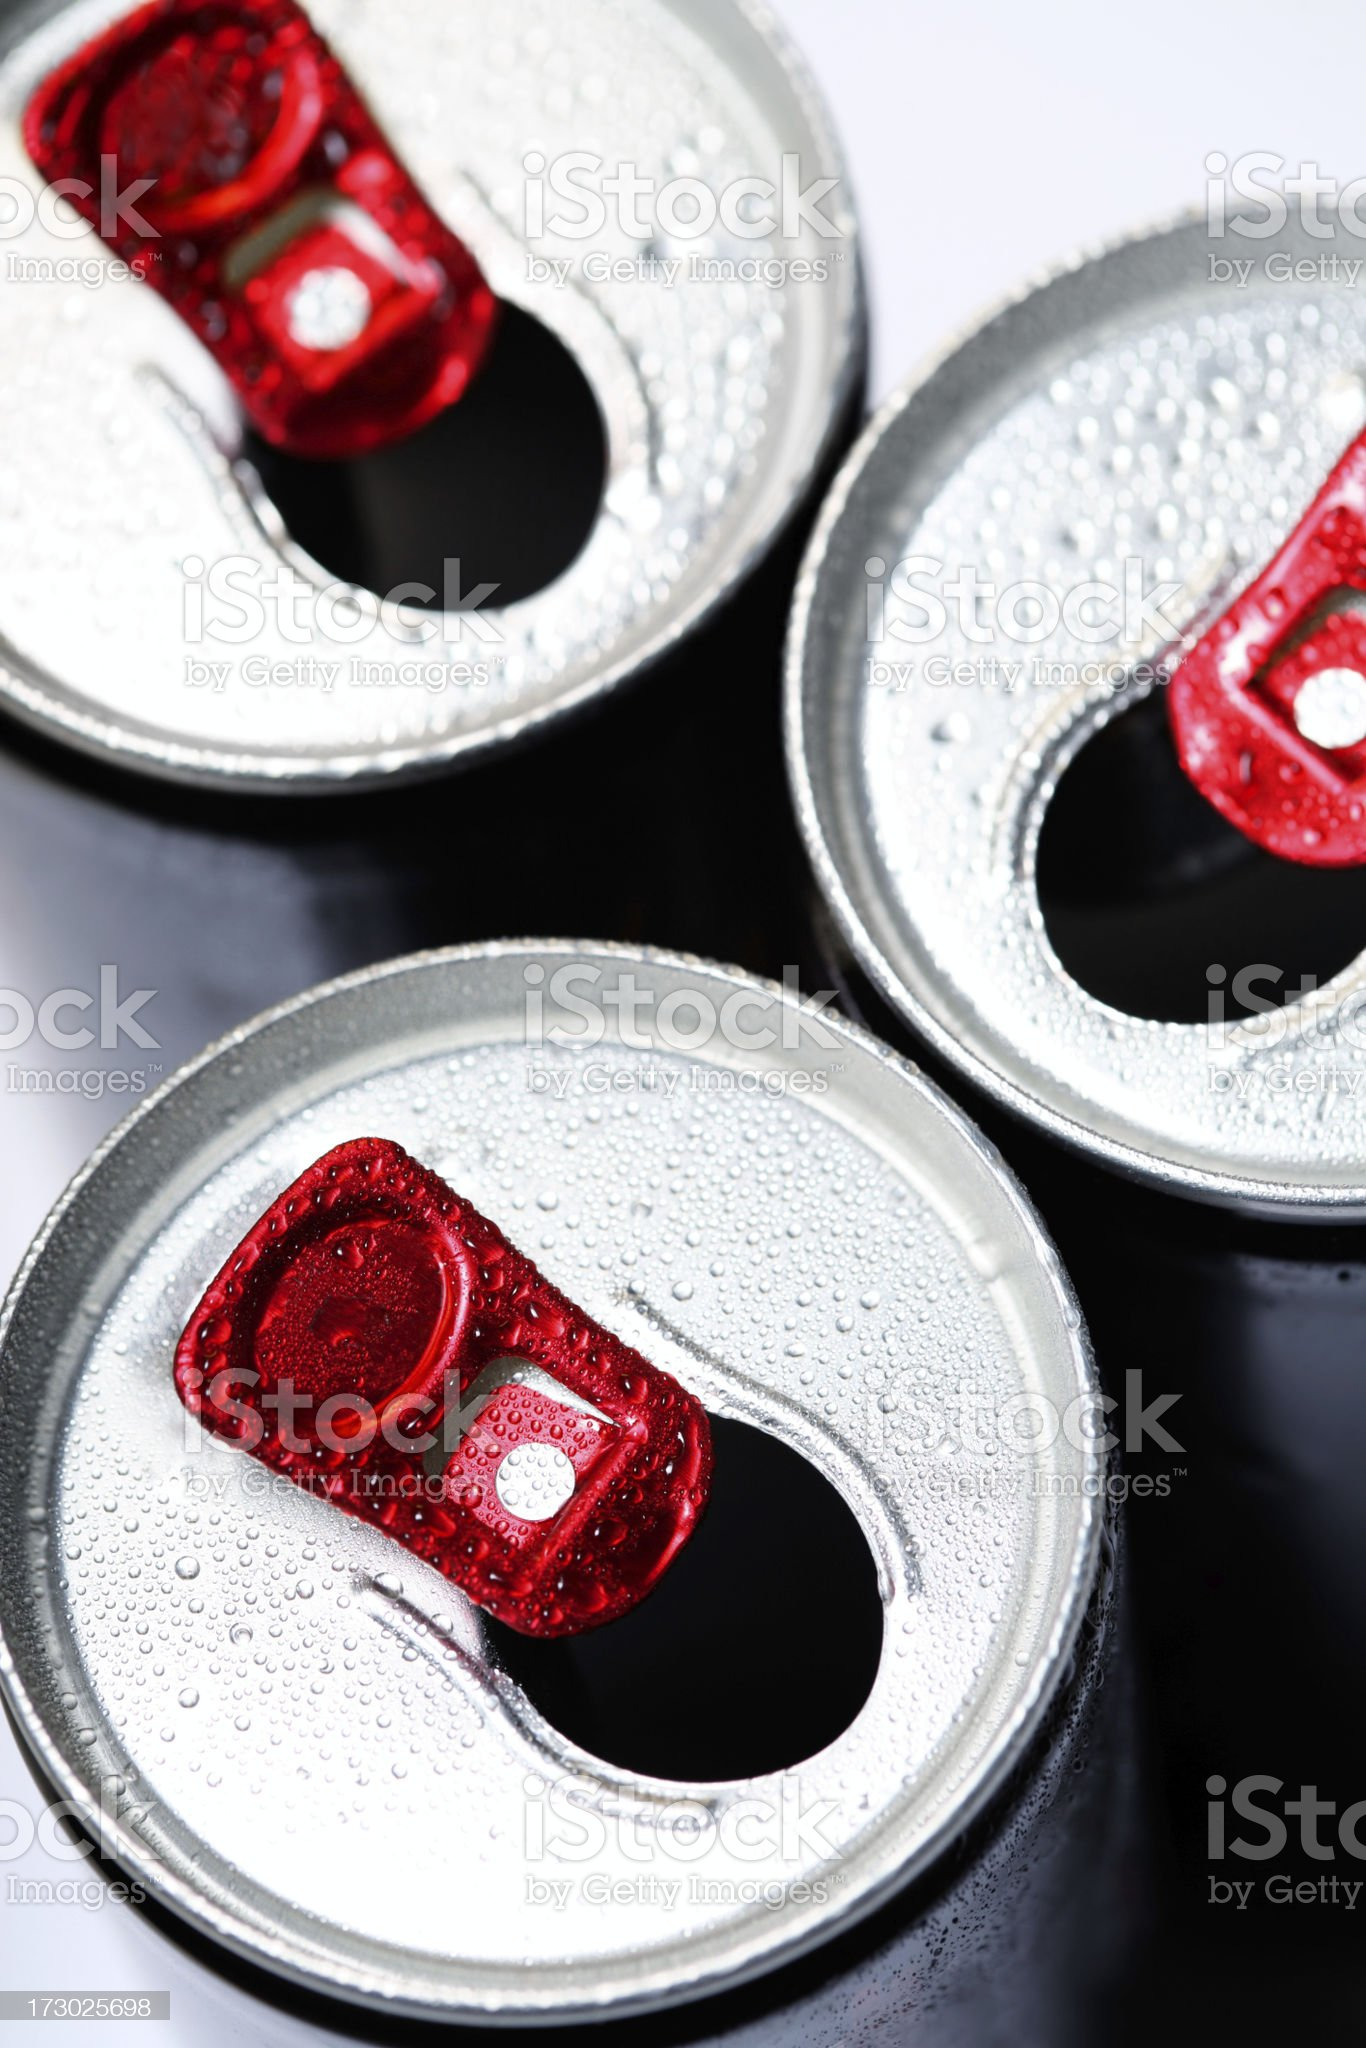 Soda Cans royalty-free stock photo